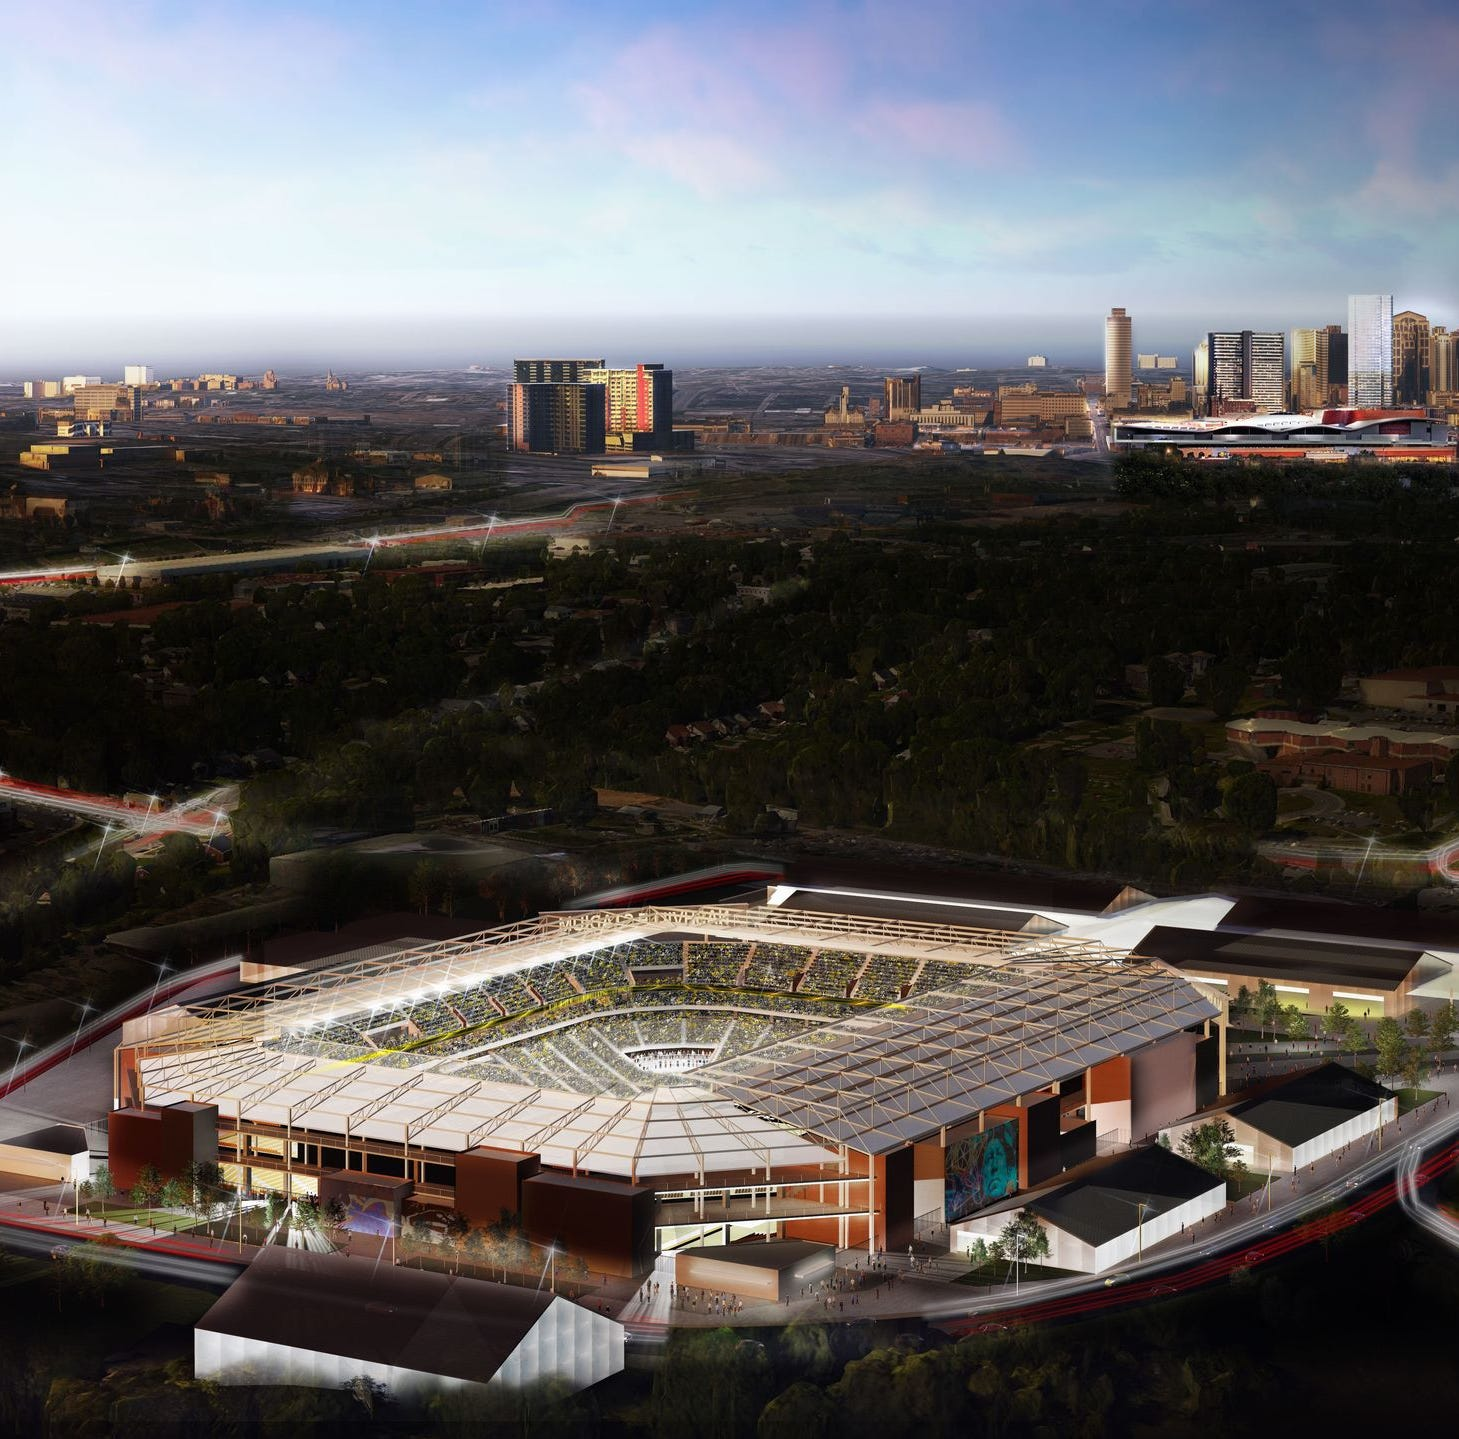 Tennessee congressman's state fair group sues Nashville seeking to stop MLS stadium